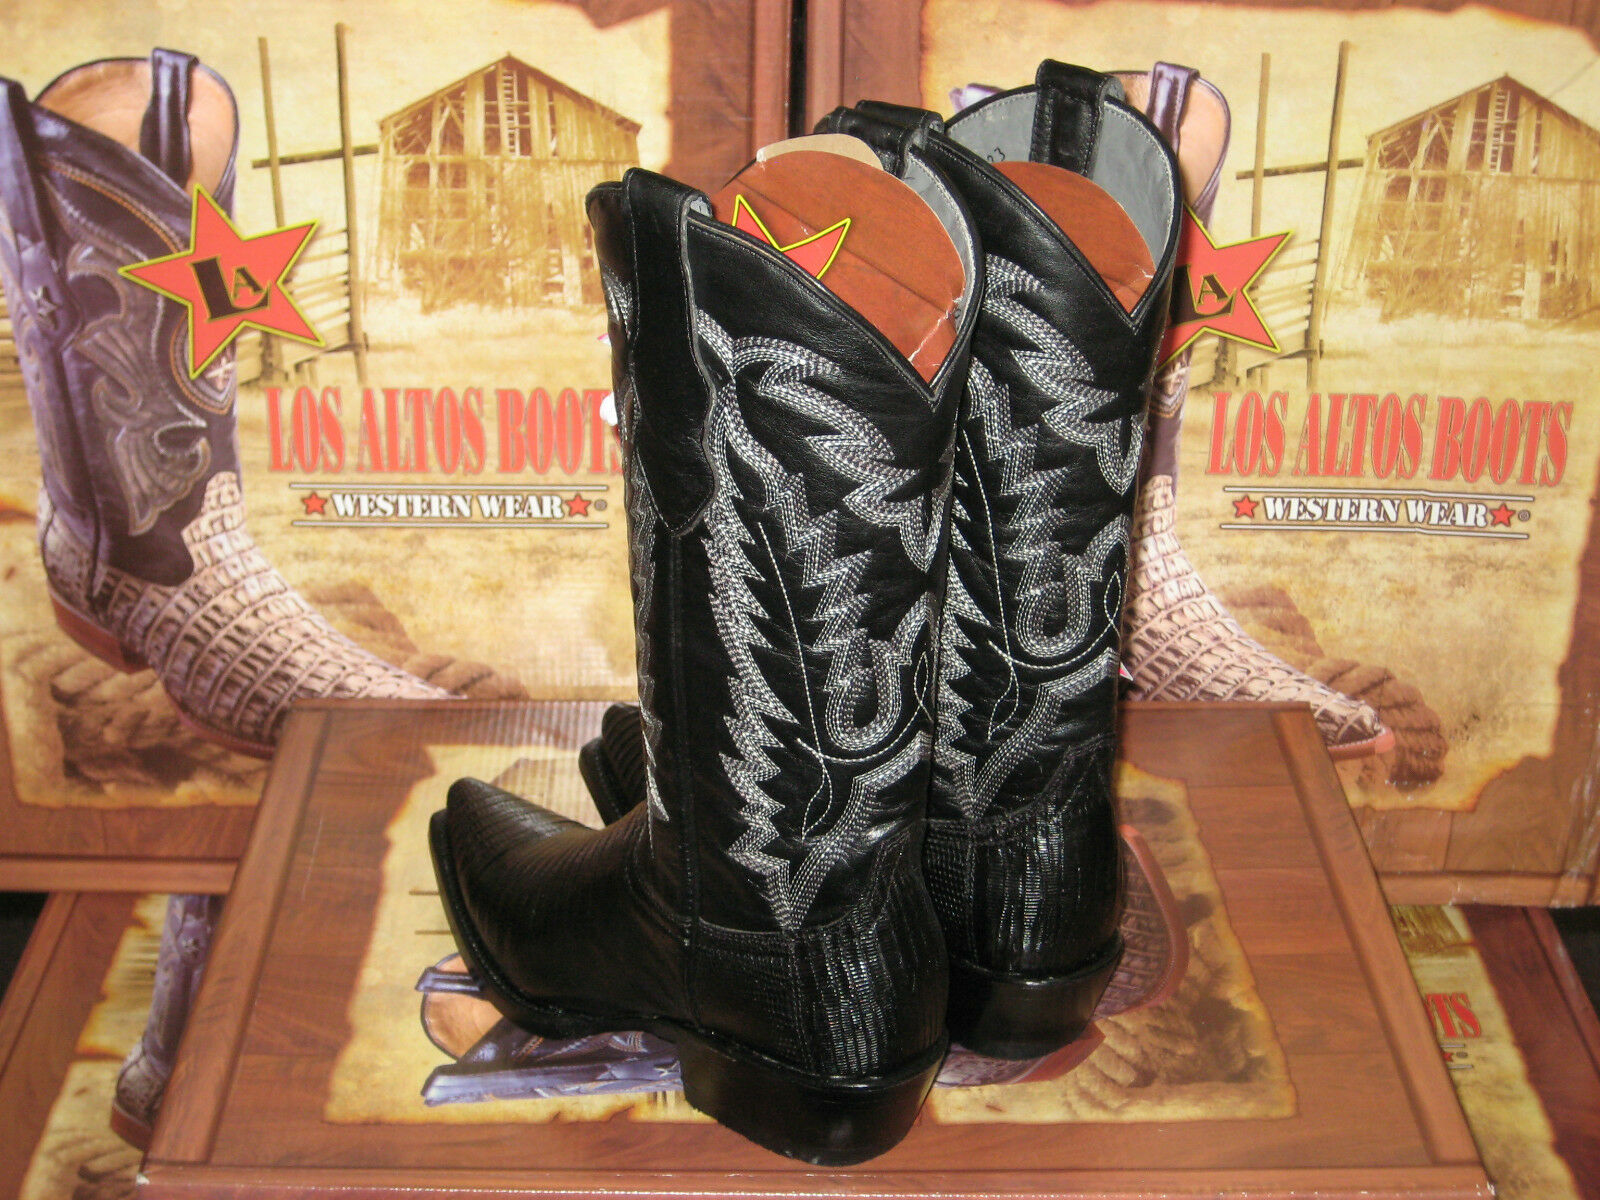 LOS ALTOS WOMEN WOMEN WOMEN BLACK GENUINE TEJU LIZARD SNIP TOE WESTERN COWBOY BOOT 340705 e117de